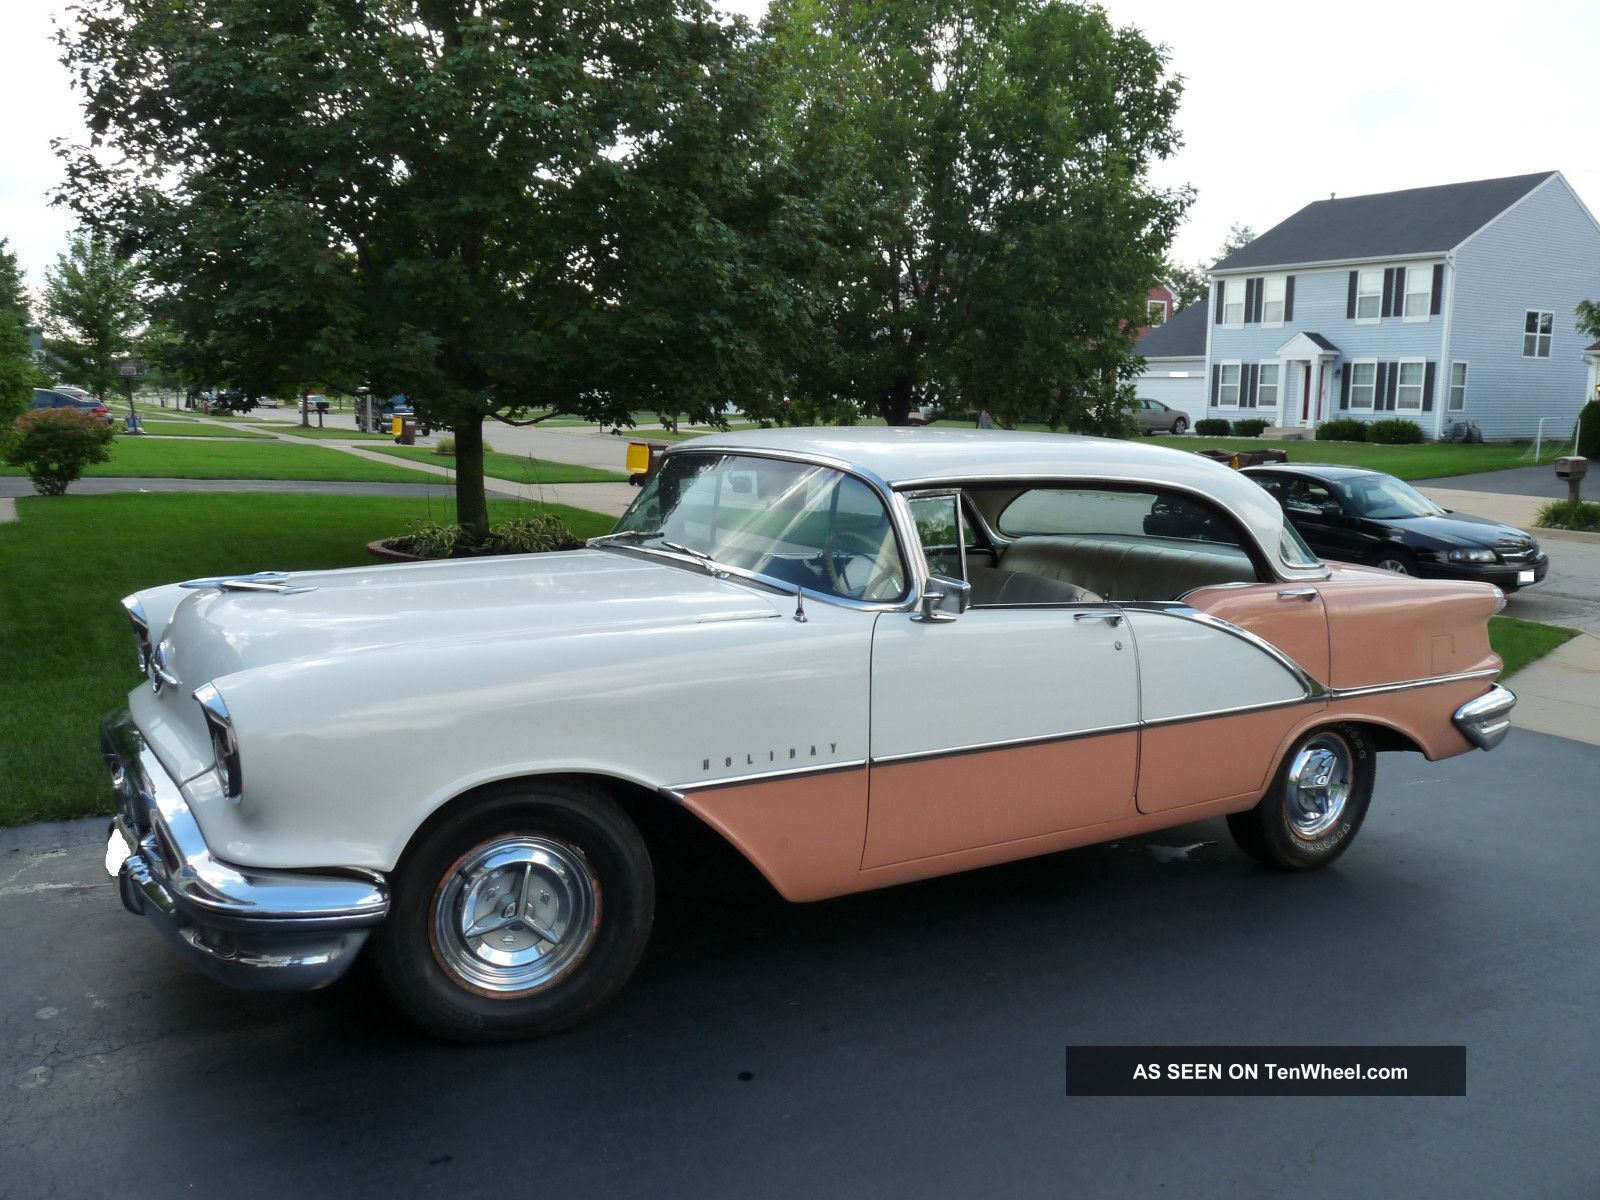 1956 Oldsmobile Holiday Delta 88 Four Door Hardtop Eighty-Eight photo